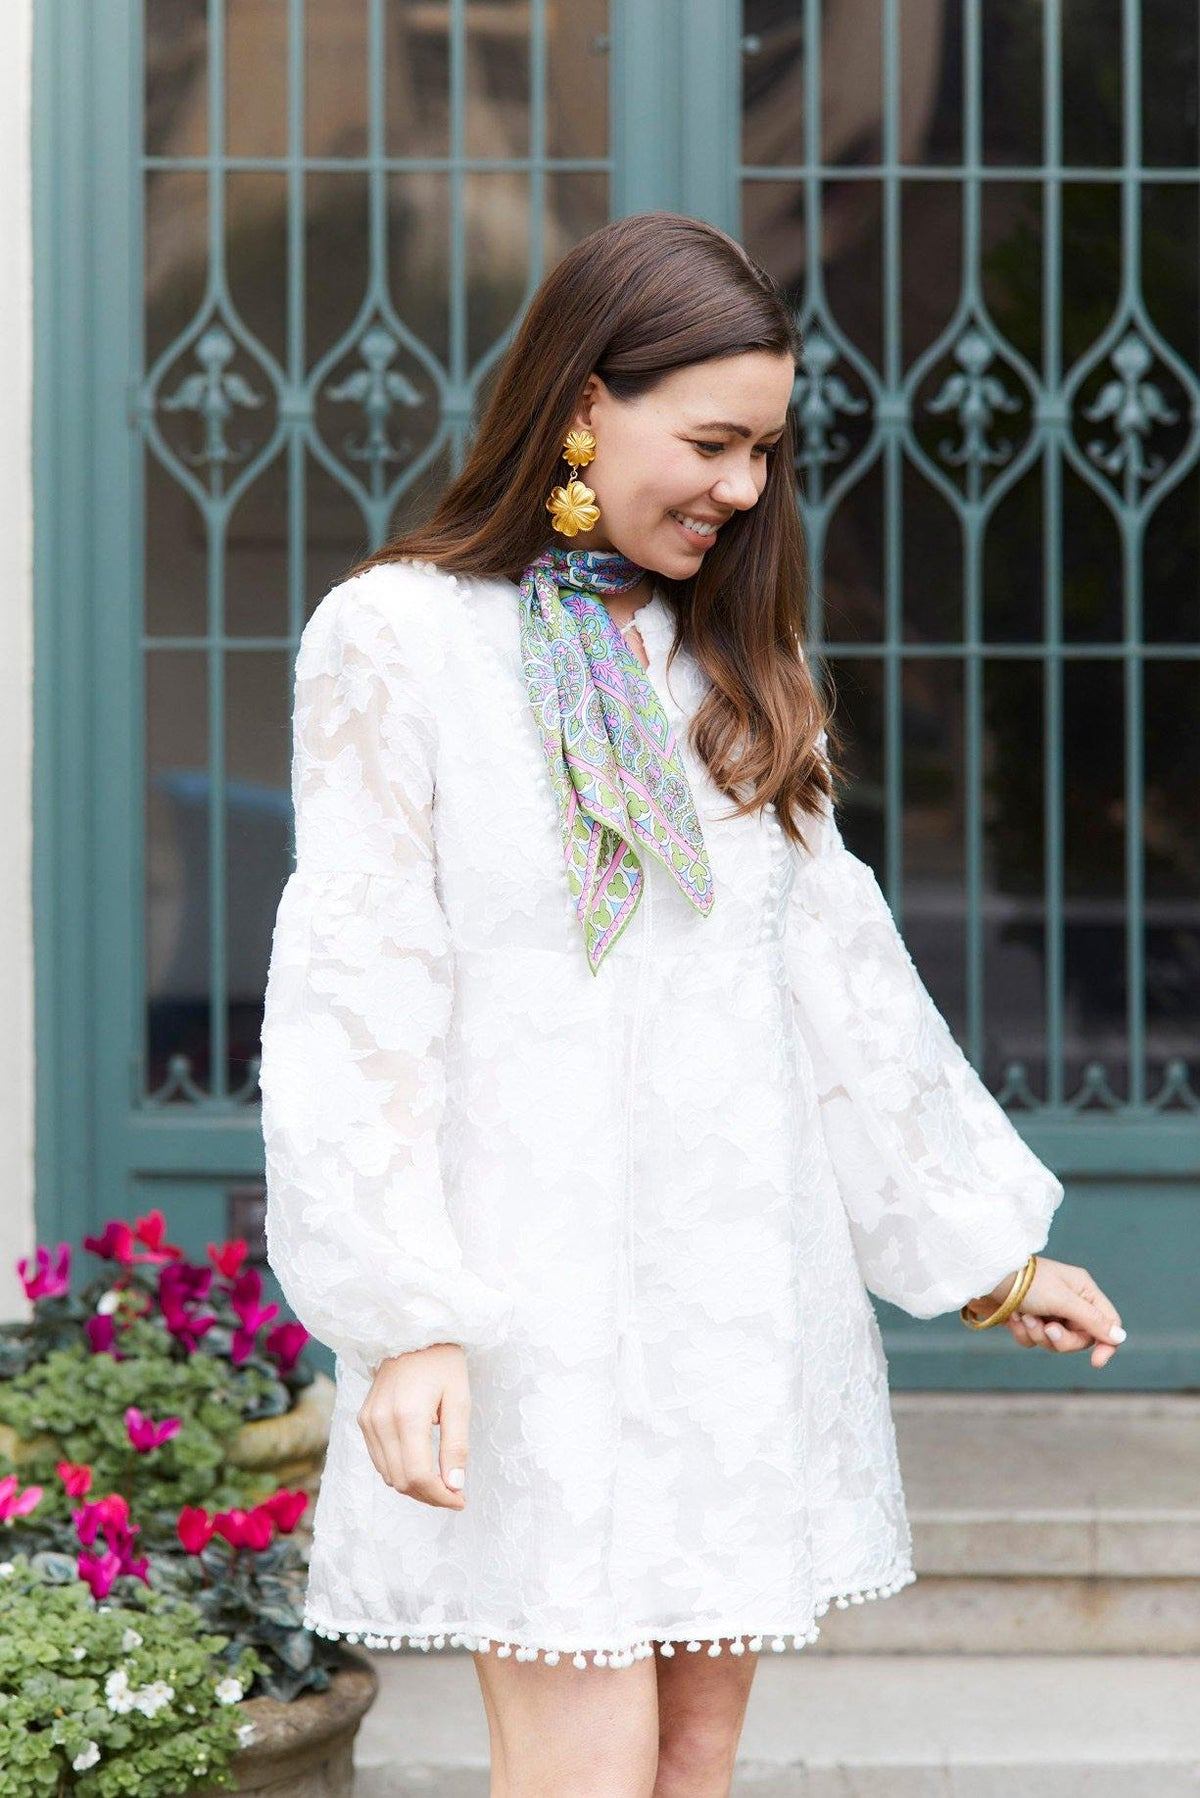 Moon River White Rose Floral Tunic Dress From Sweet & Spark.